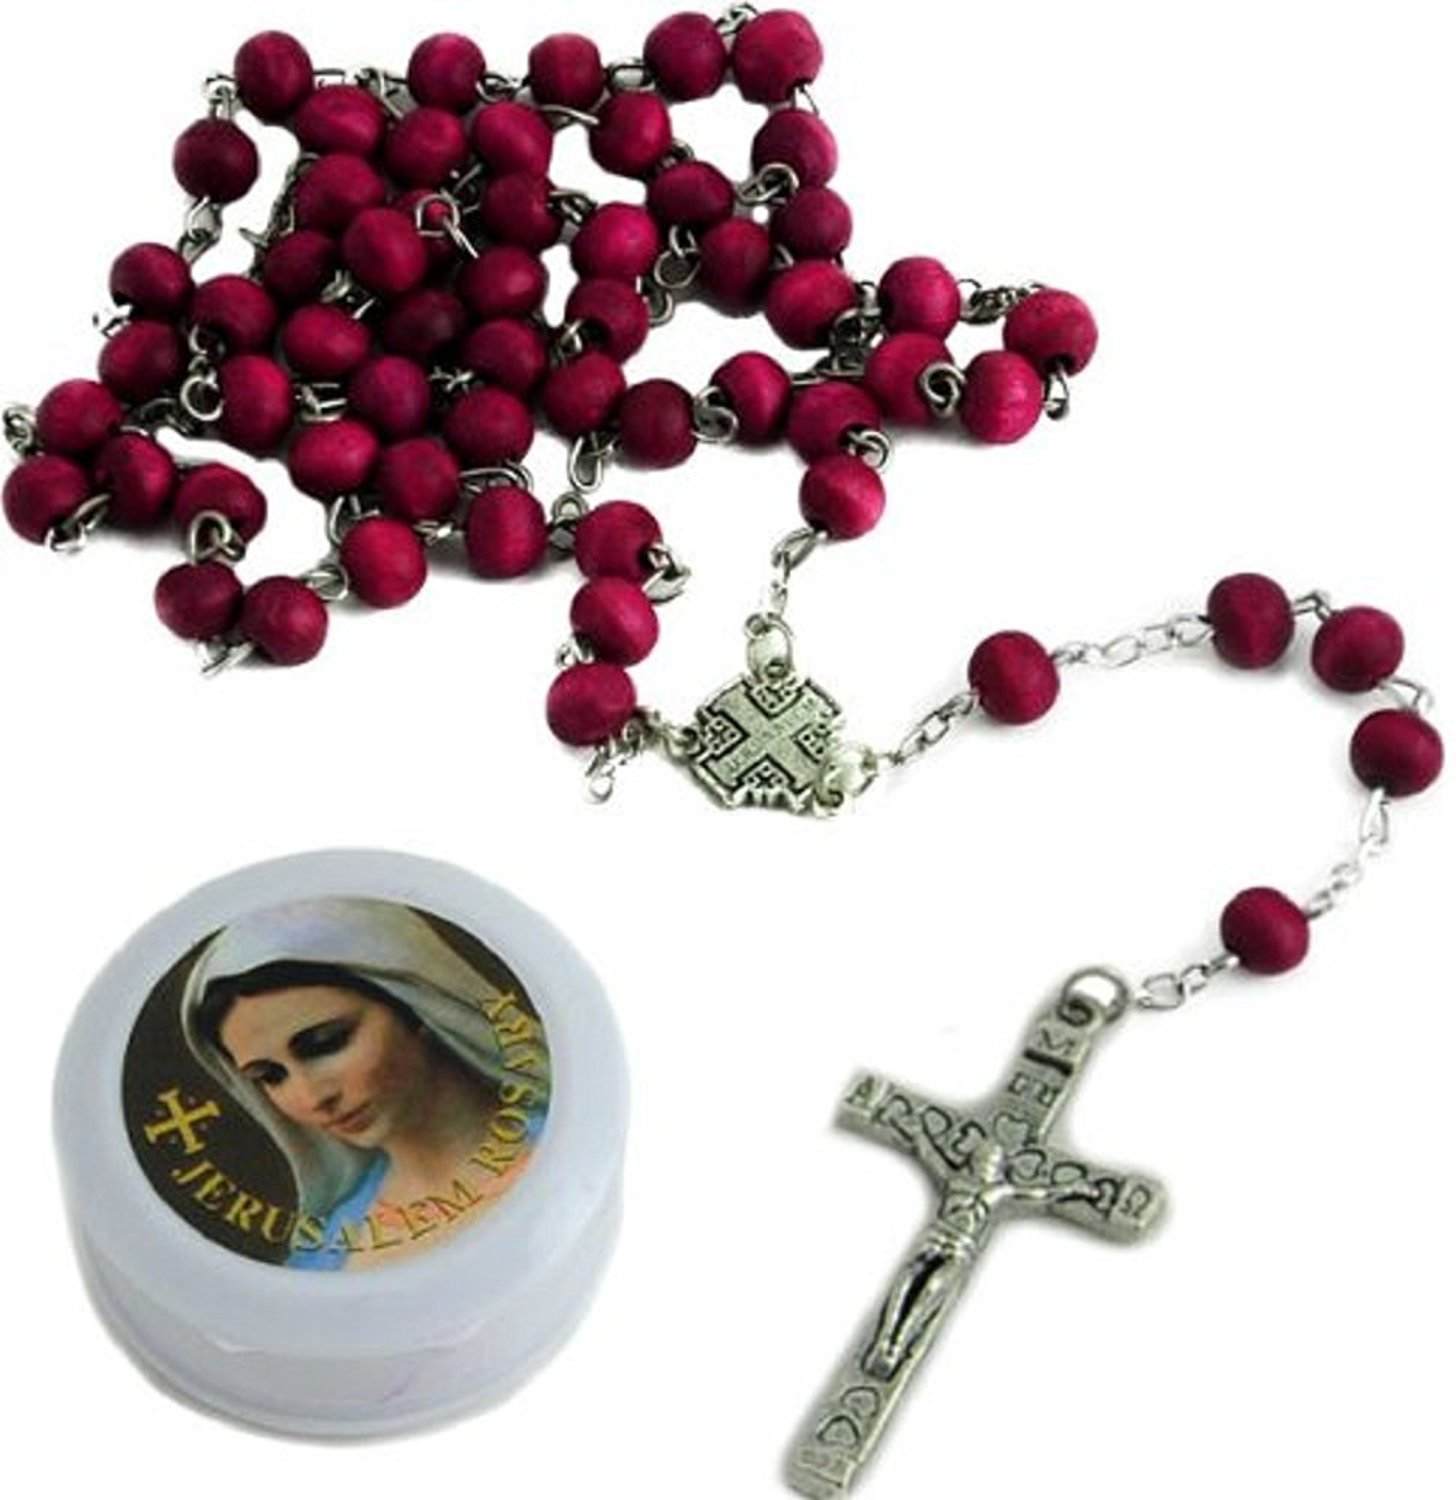 BLESSED CATHOLIC ROSARY NECKLACE Red Rose Scented Wood Beads Jerusalem Cross Crucifix in Gift Box by Talisman4U